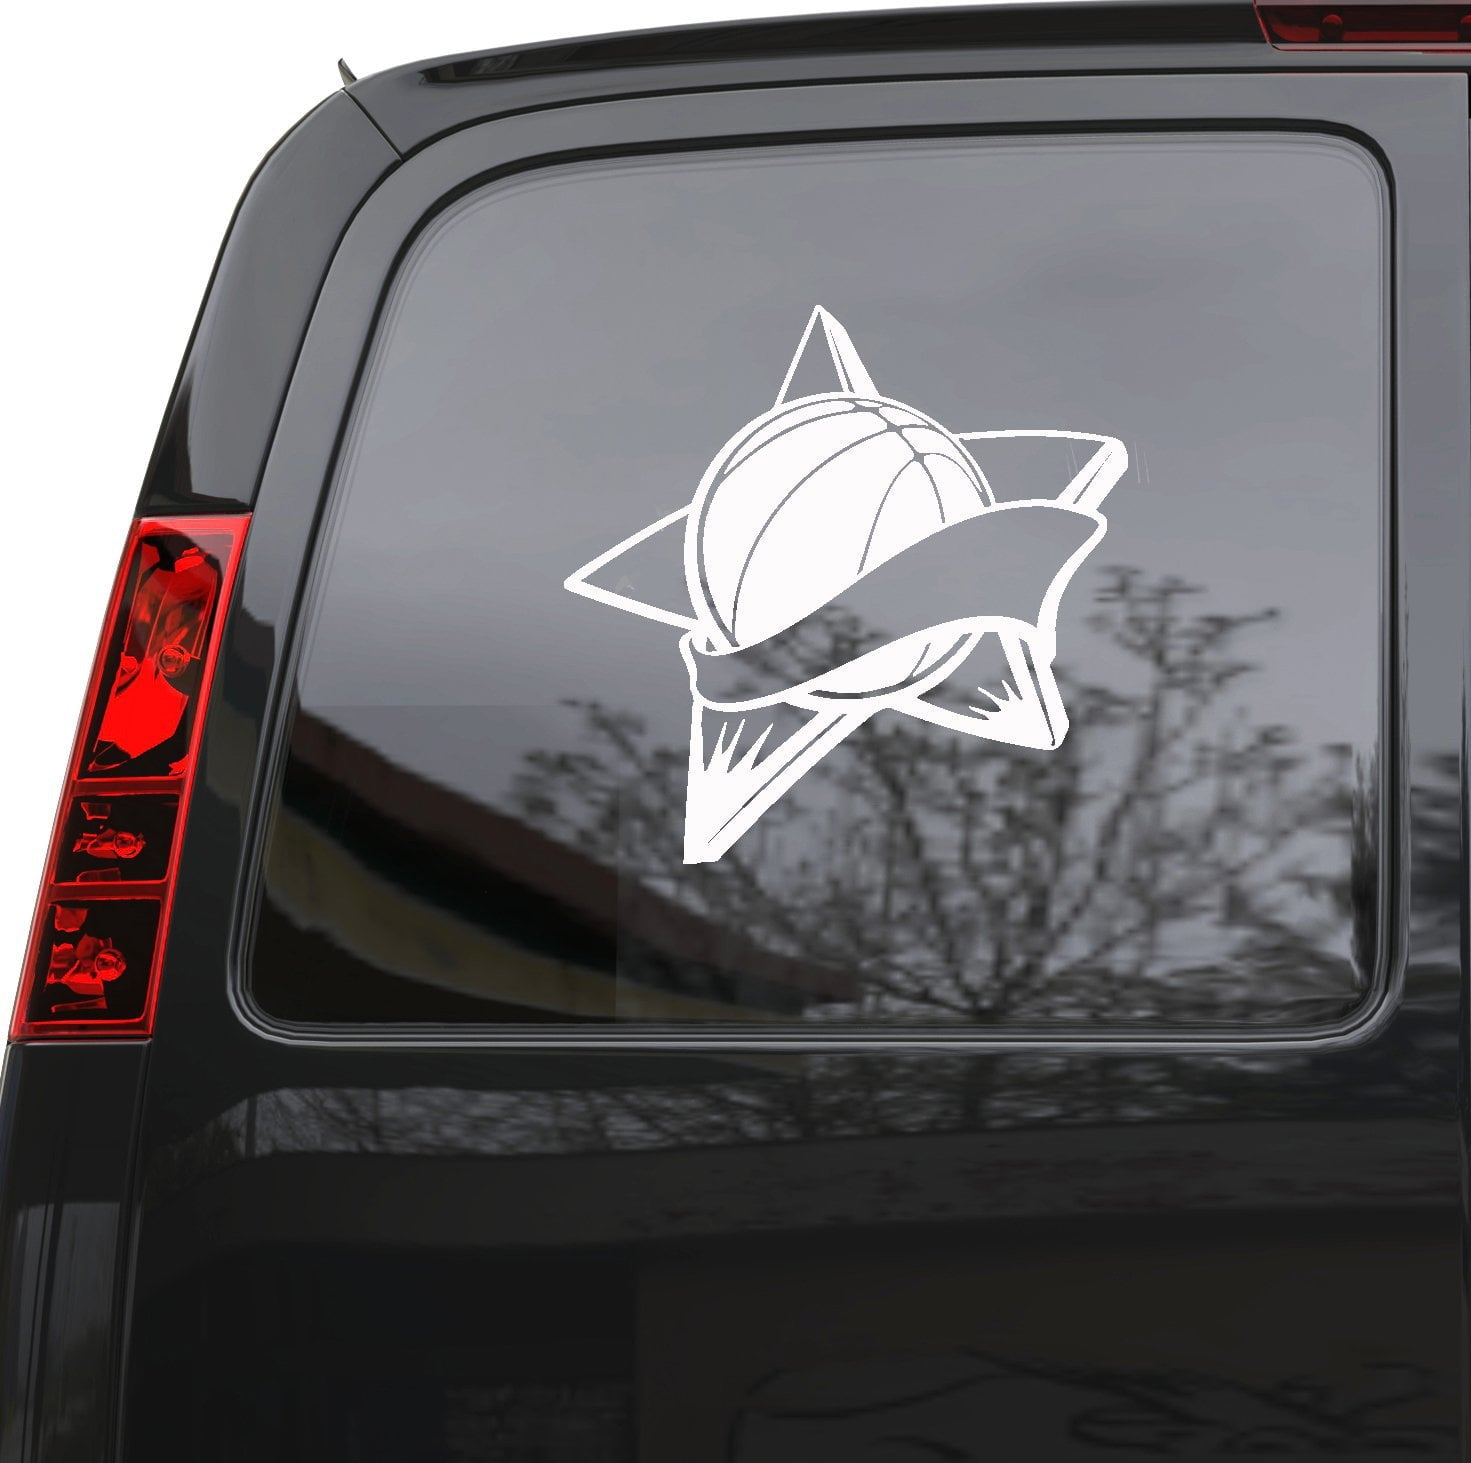 "Auto Car Sticker Decal Basketball Ball Sports Fan Truck Laptop Window 5"" by 5"" Unique Gift z824c"